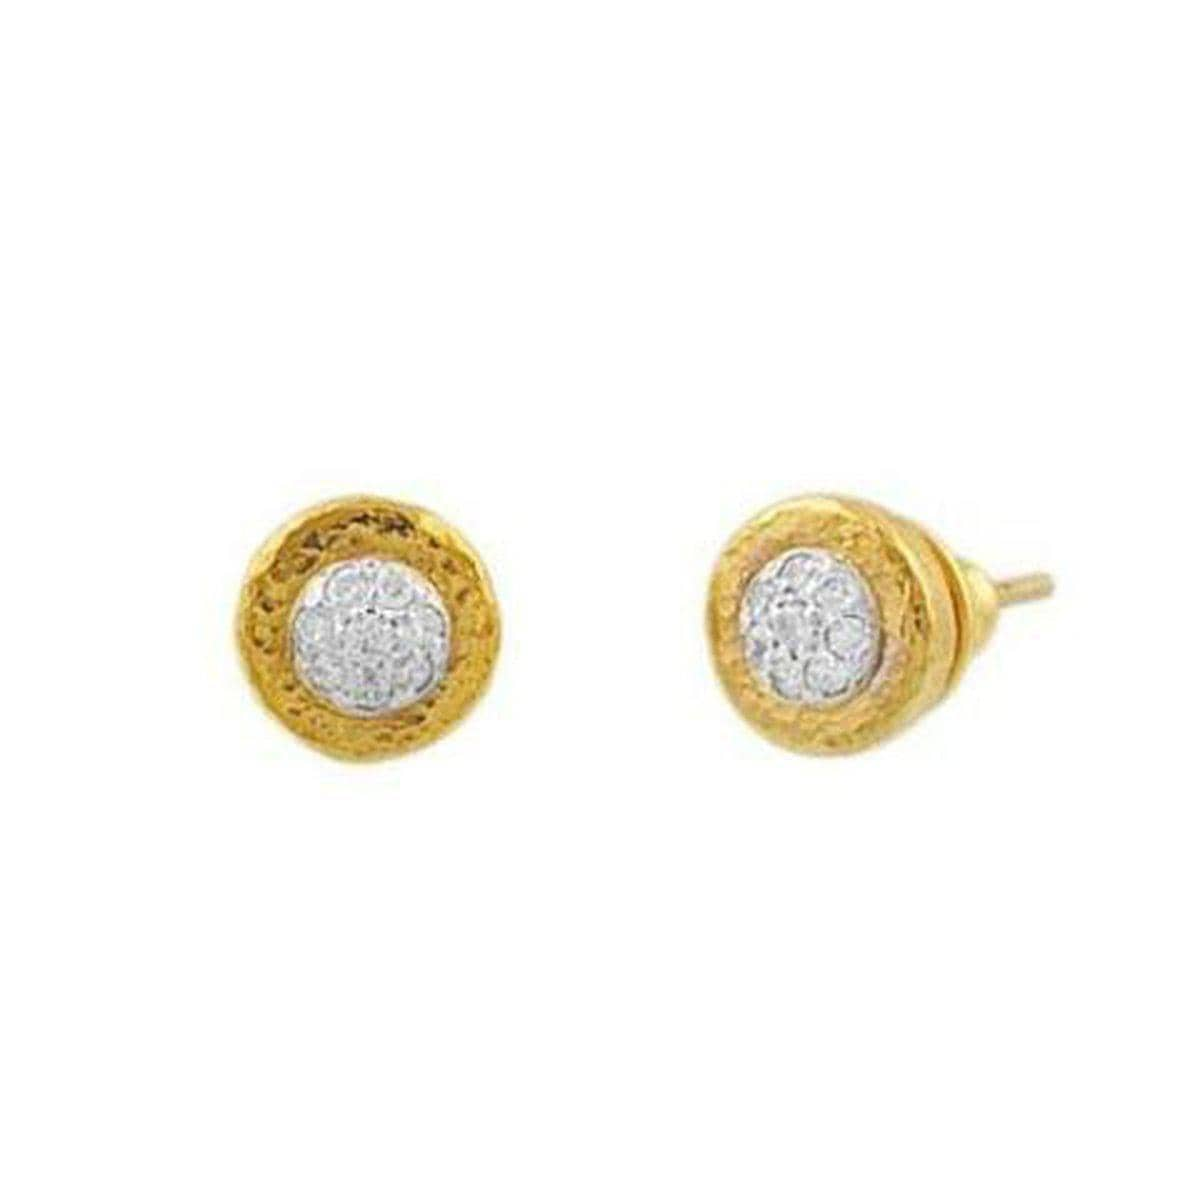 Delicate 24K Gold White Diamond Earrings - E-DRPVDI-GF